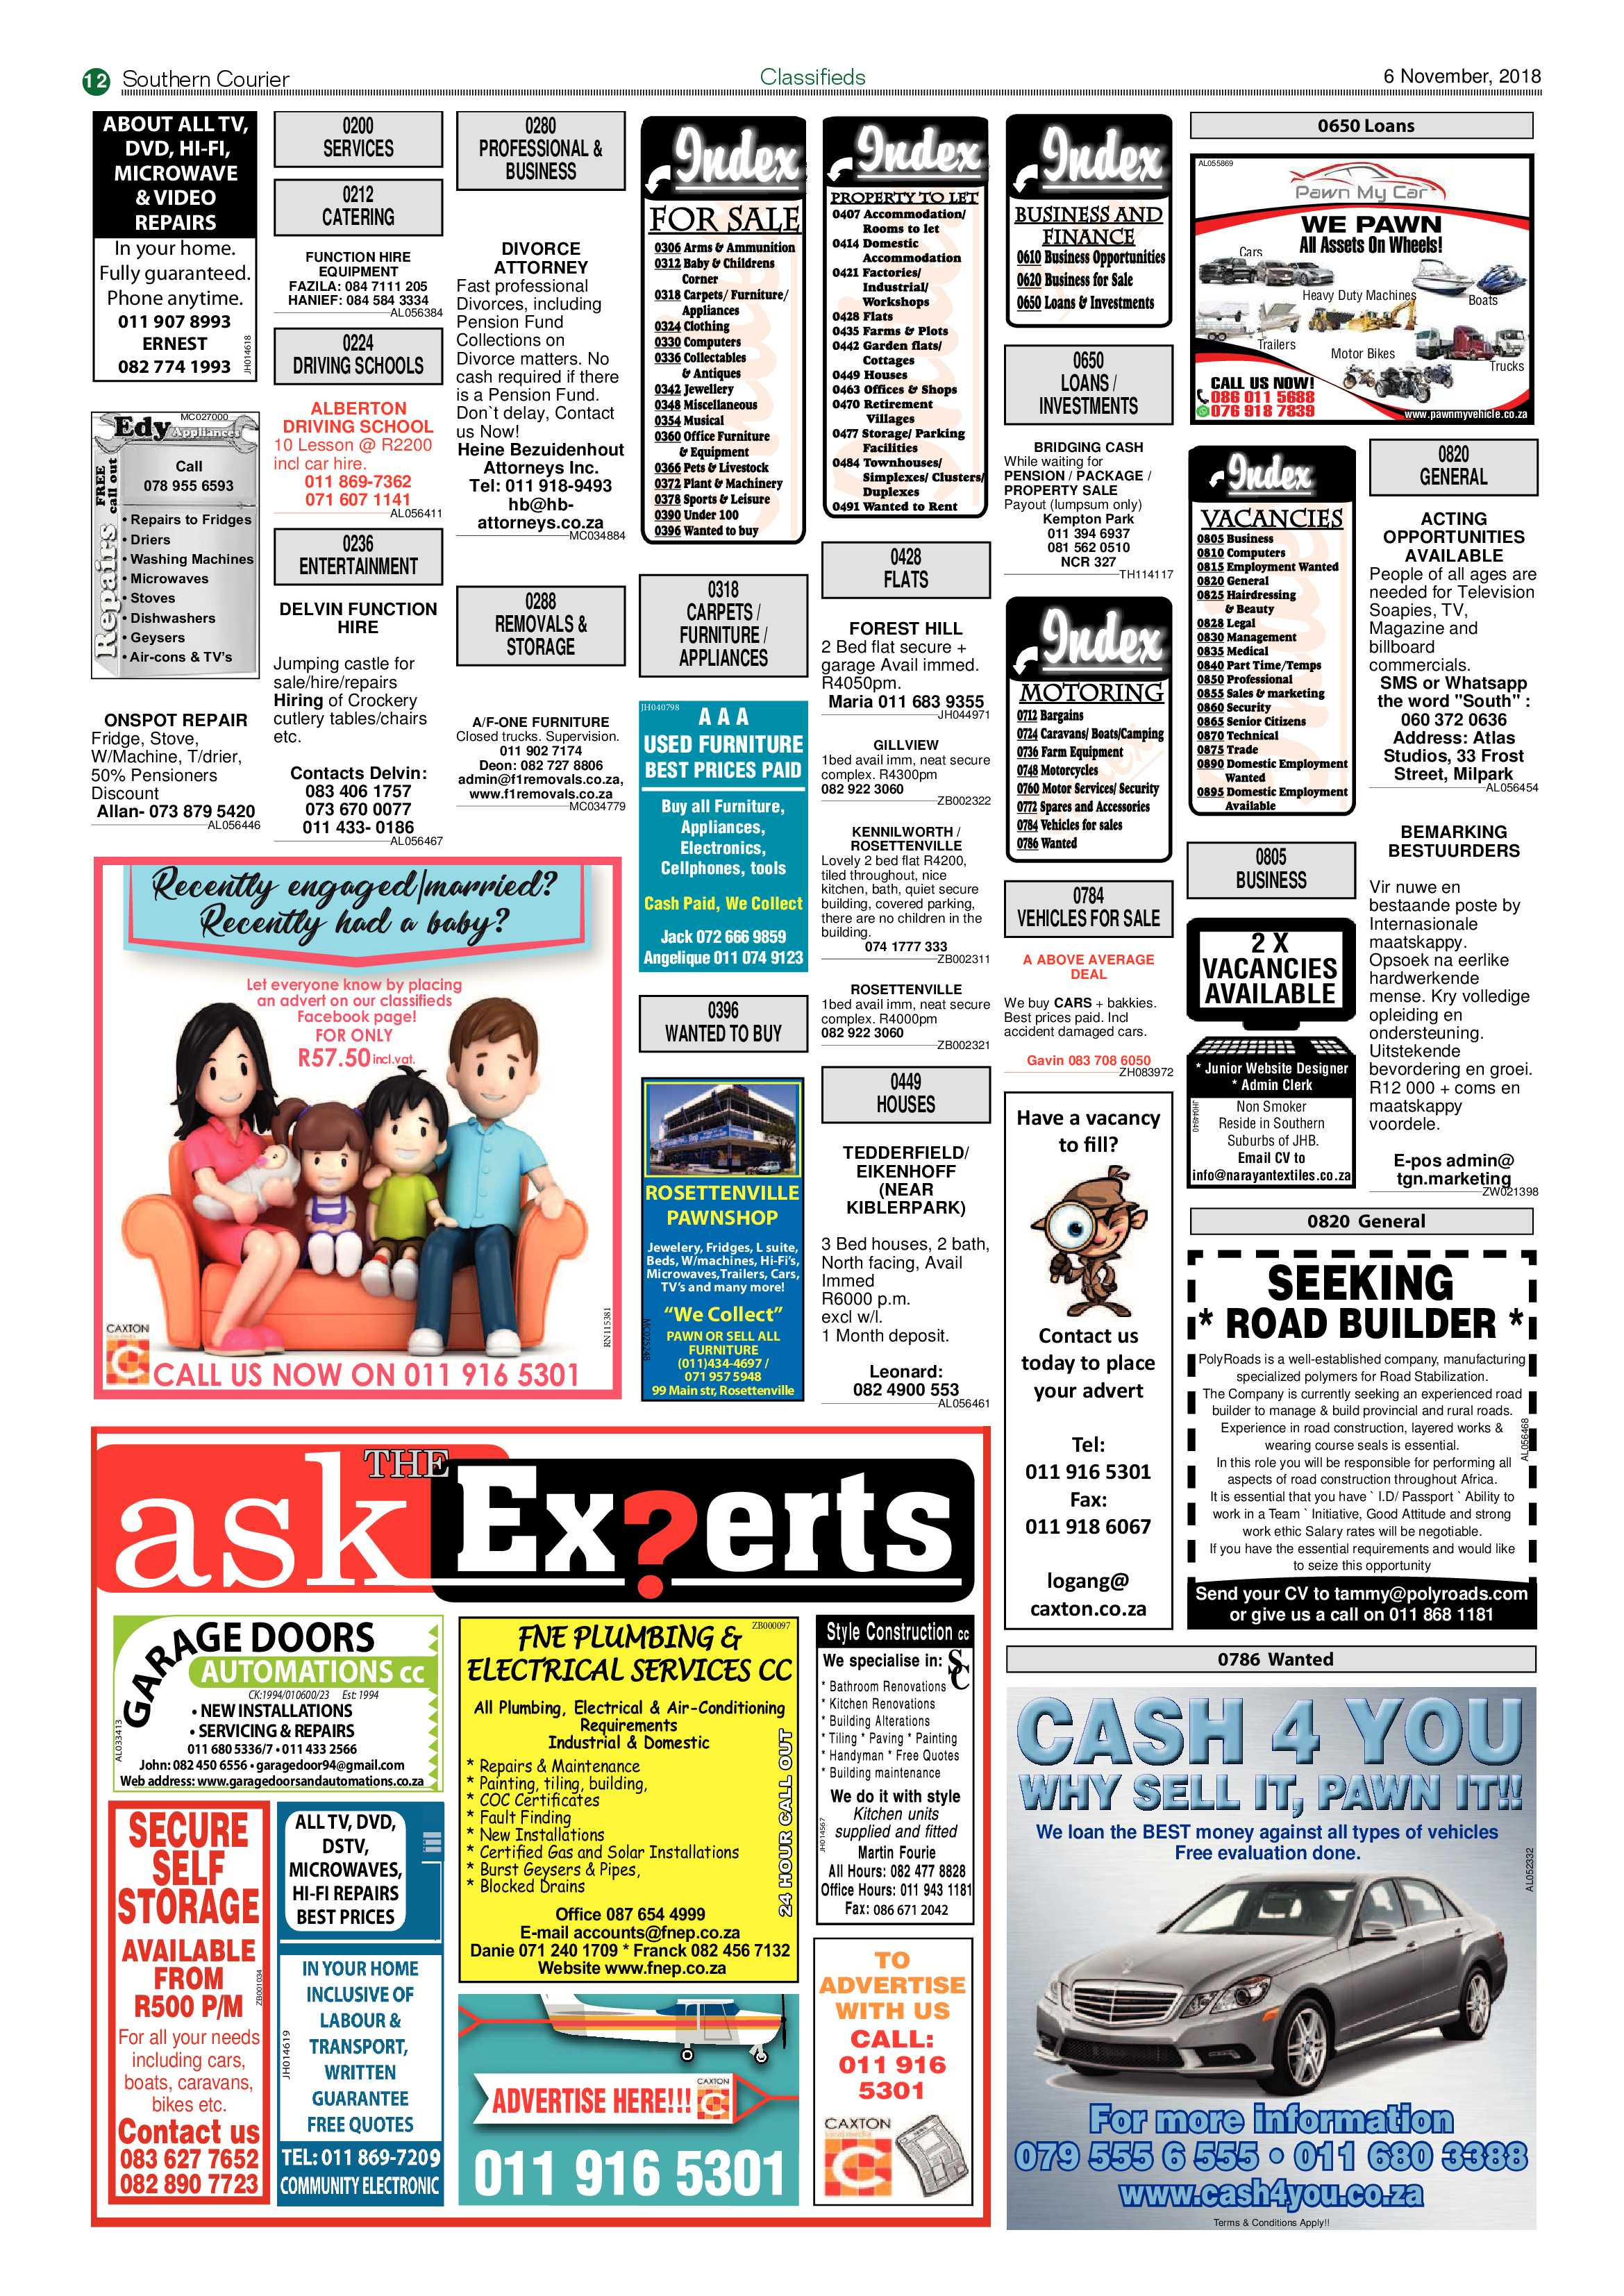 southern-courier-06-november-2018-epapers-page-12